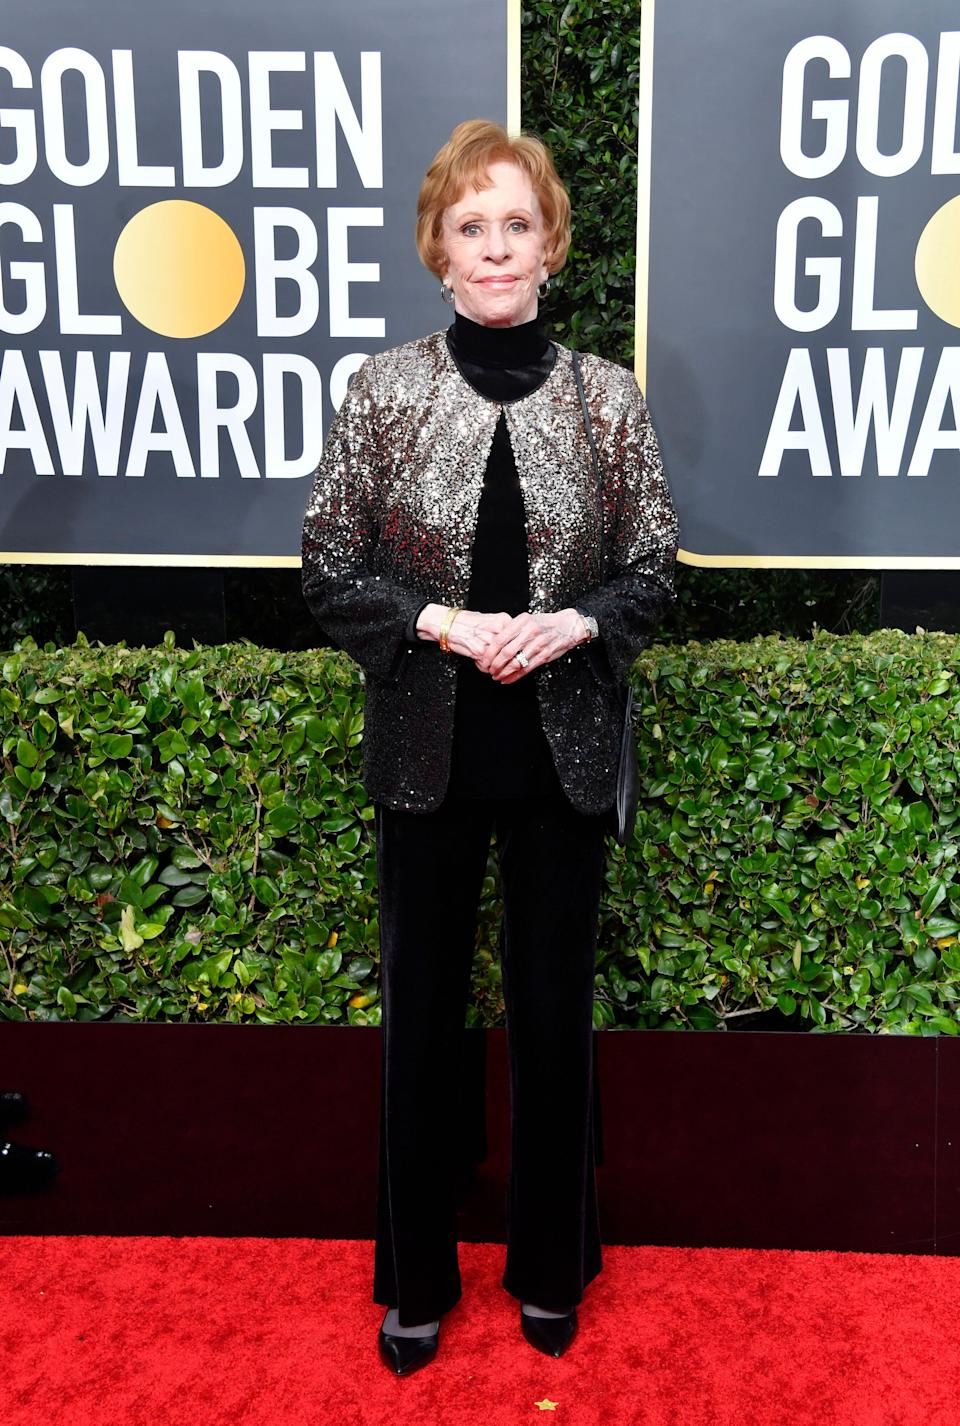 This is absolutely the right outfit to wear when you're 86 and a legend who has a major award named after you. So sparkly but also so comfortable!